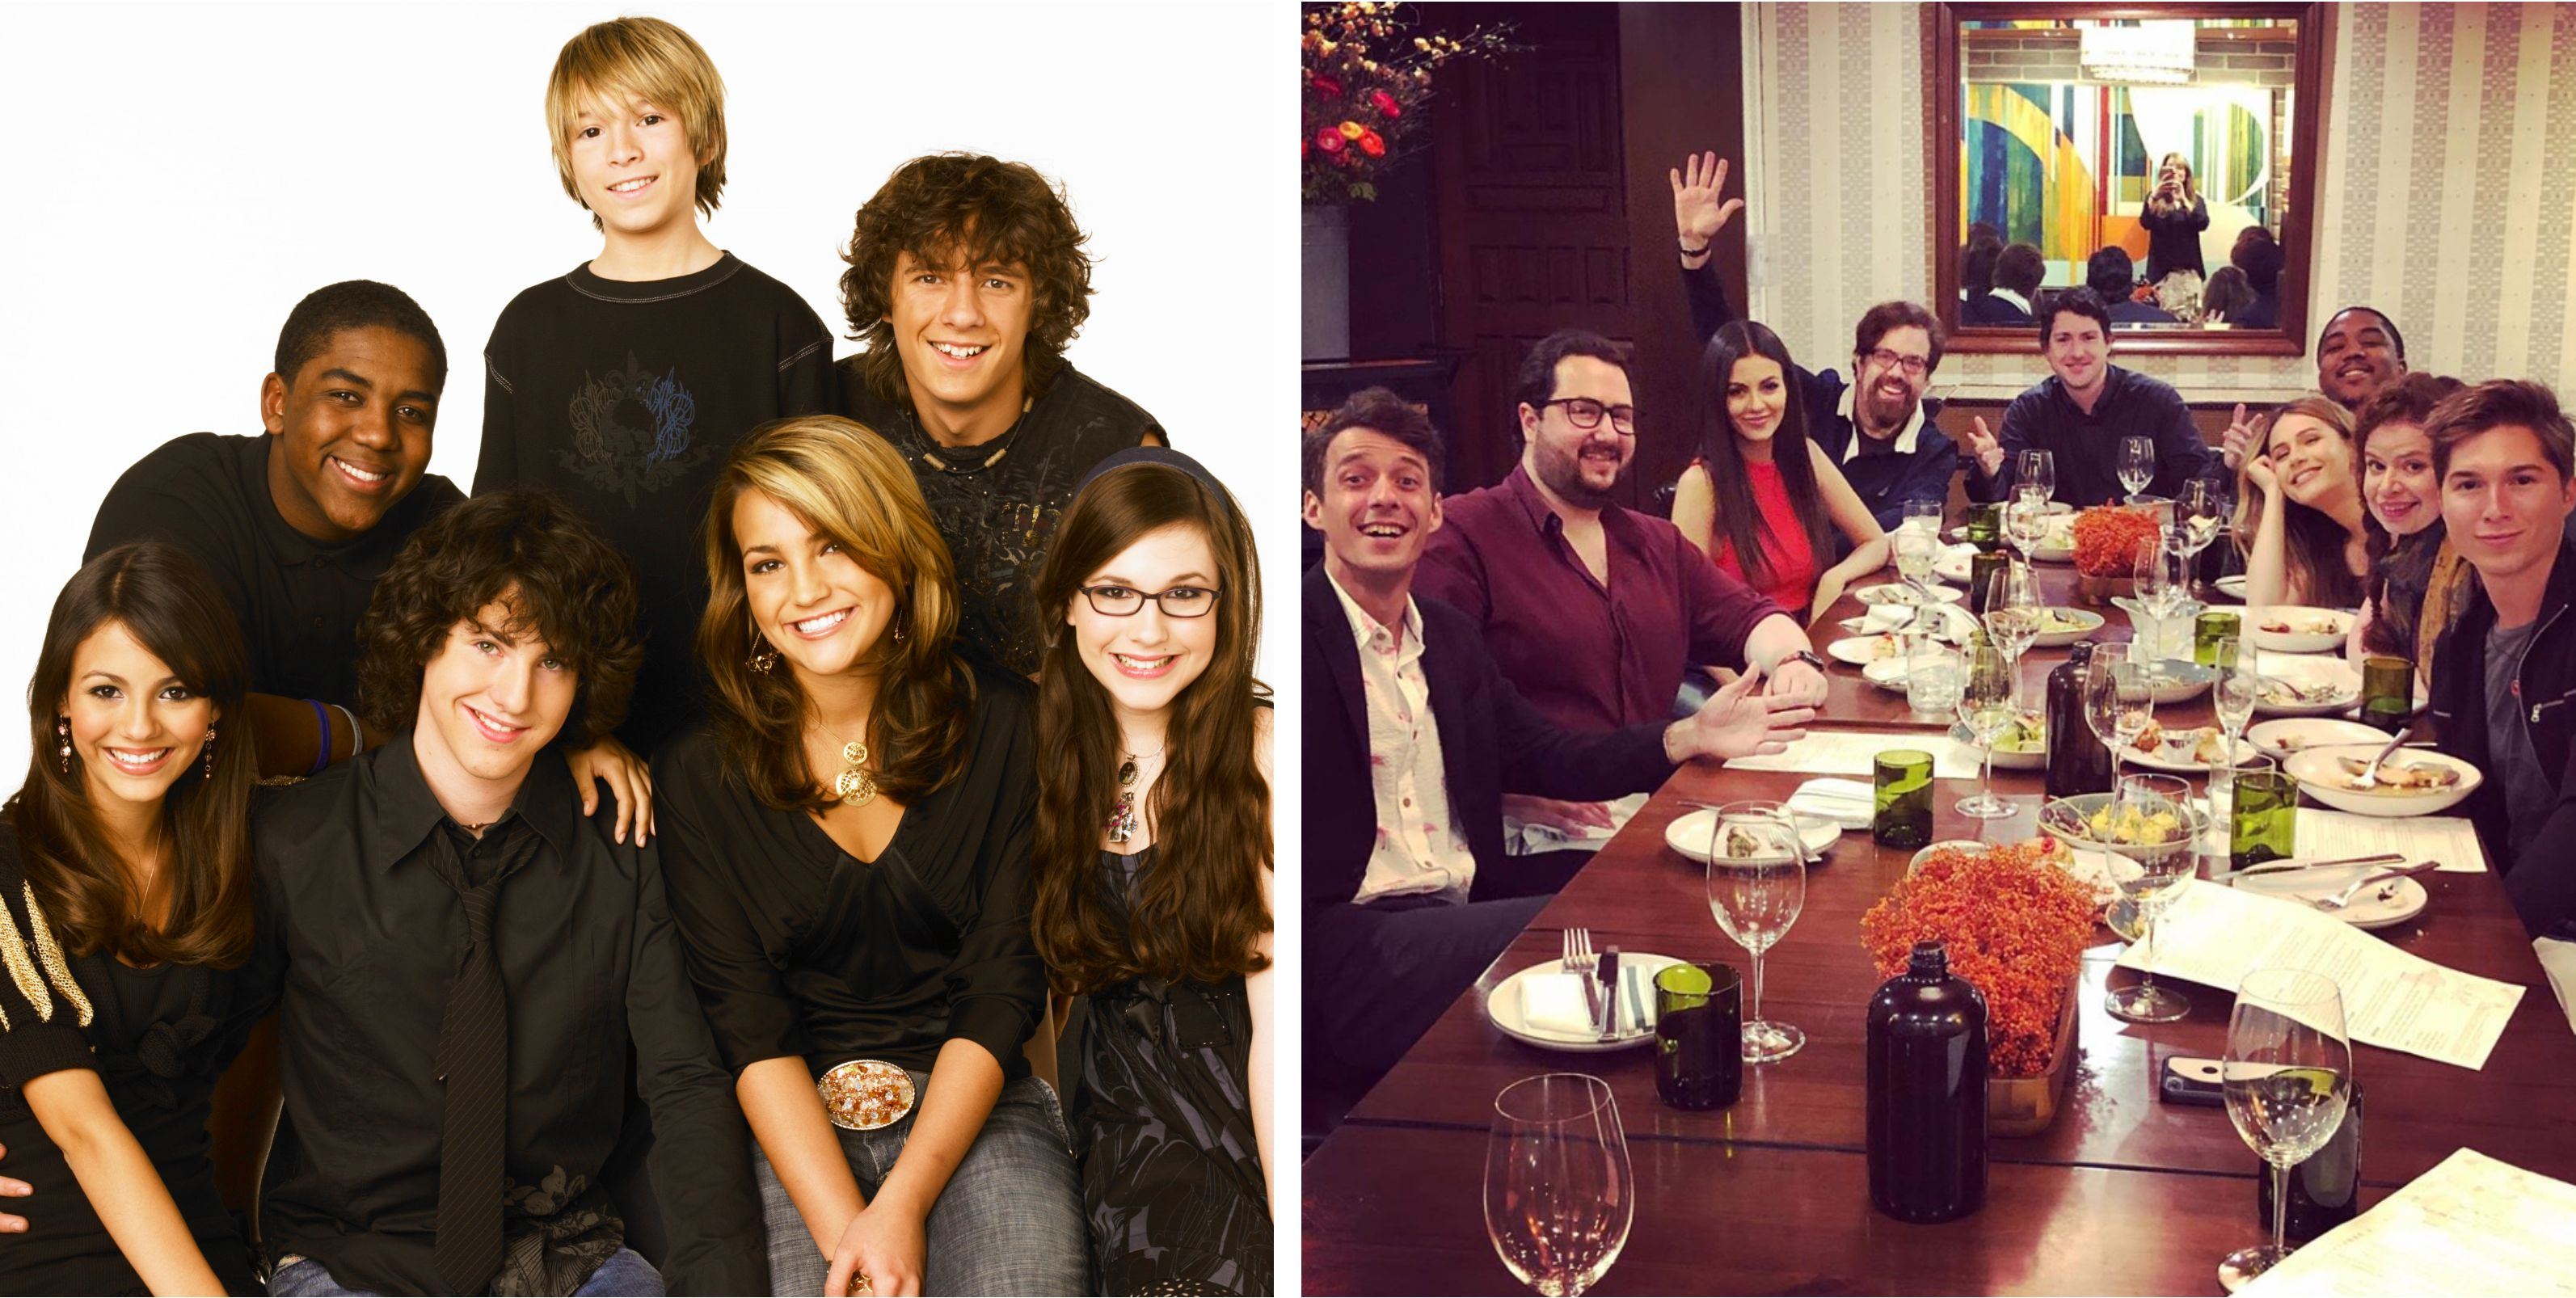 The Zoey 101 Cast Reunited After More Than A Decade